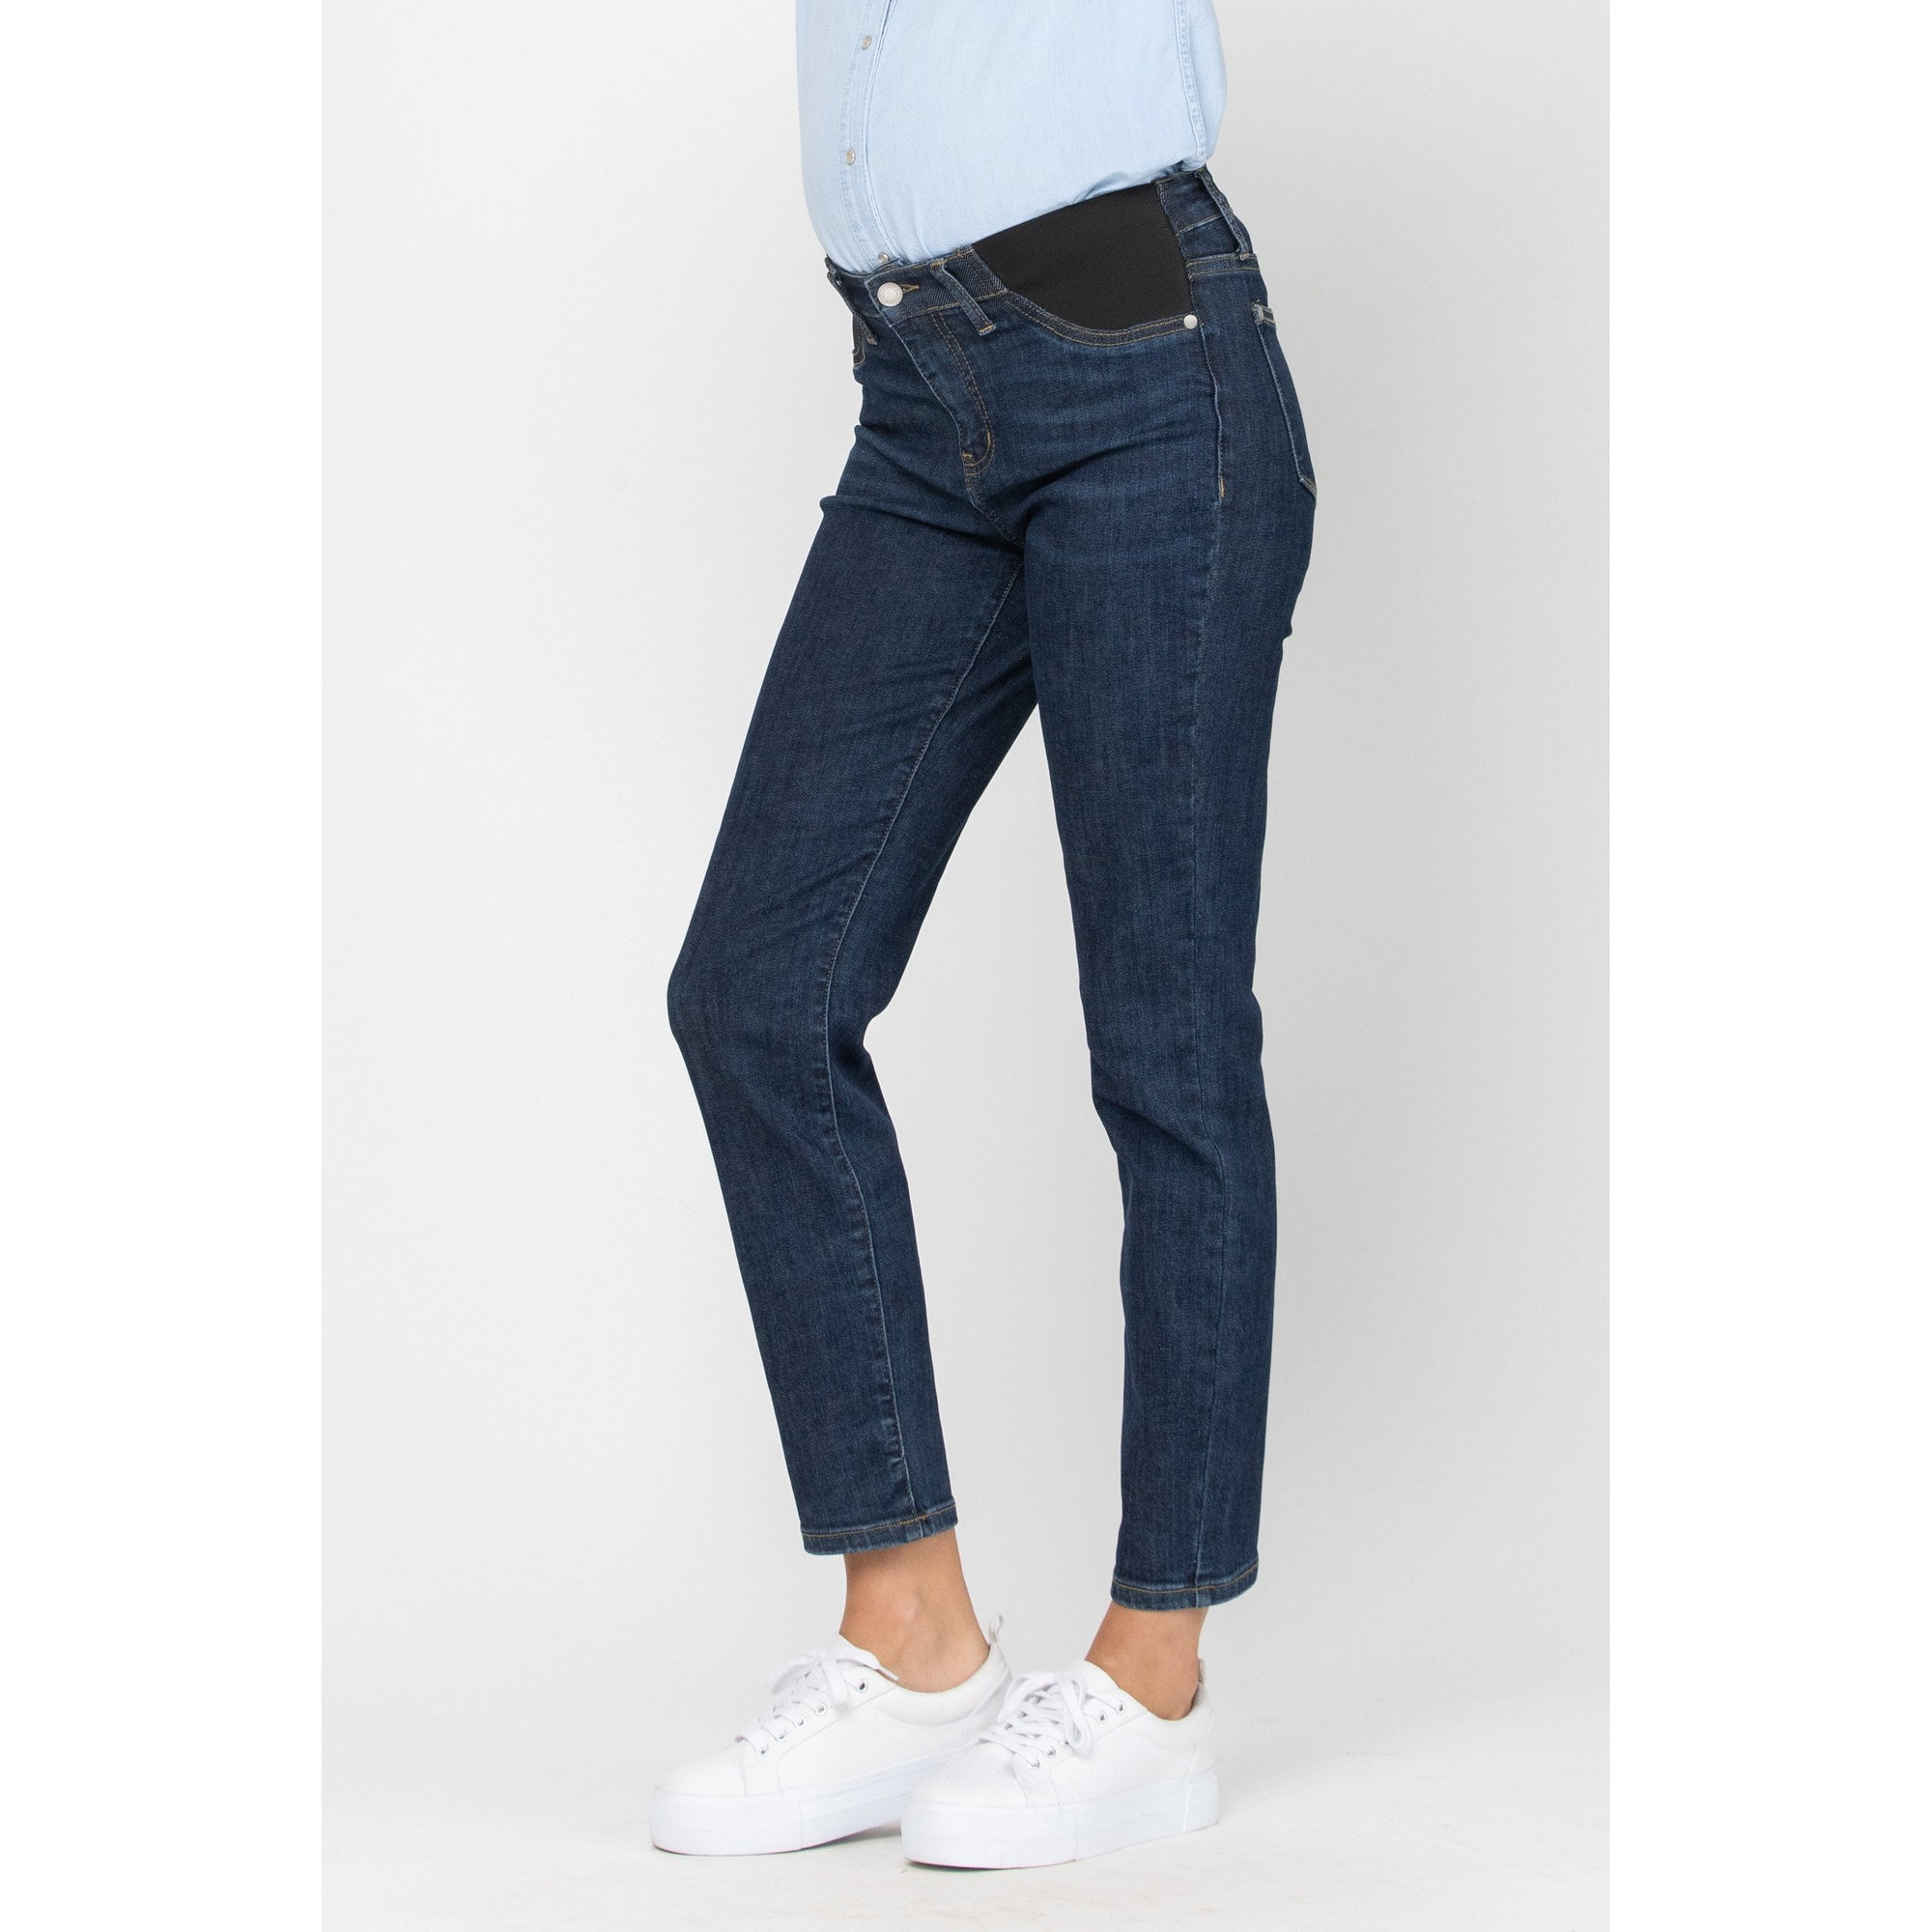 Judy Blue Maternity Slim Fit Jeans - Style #9805 - Online Only